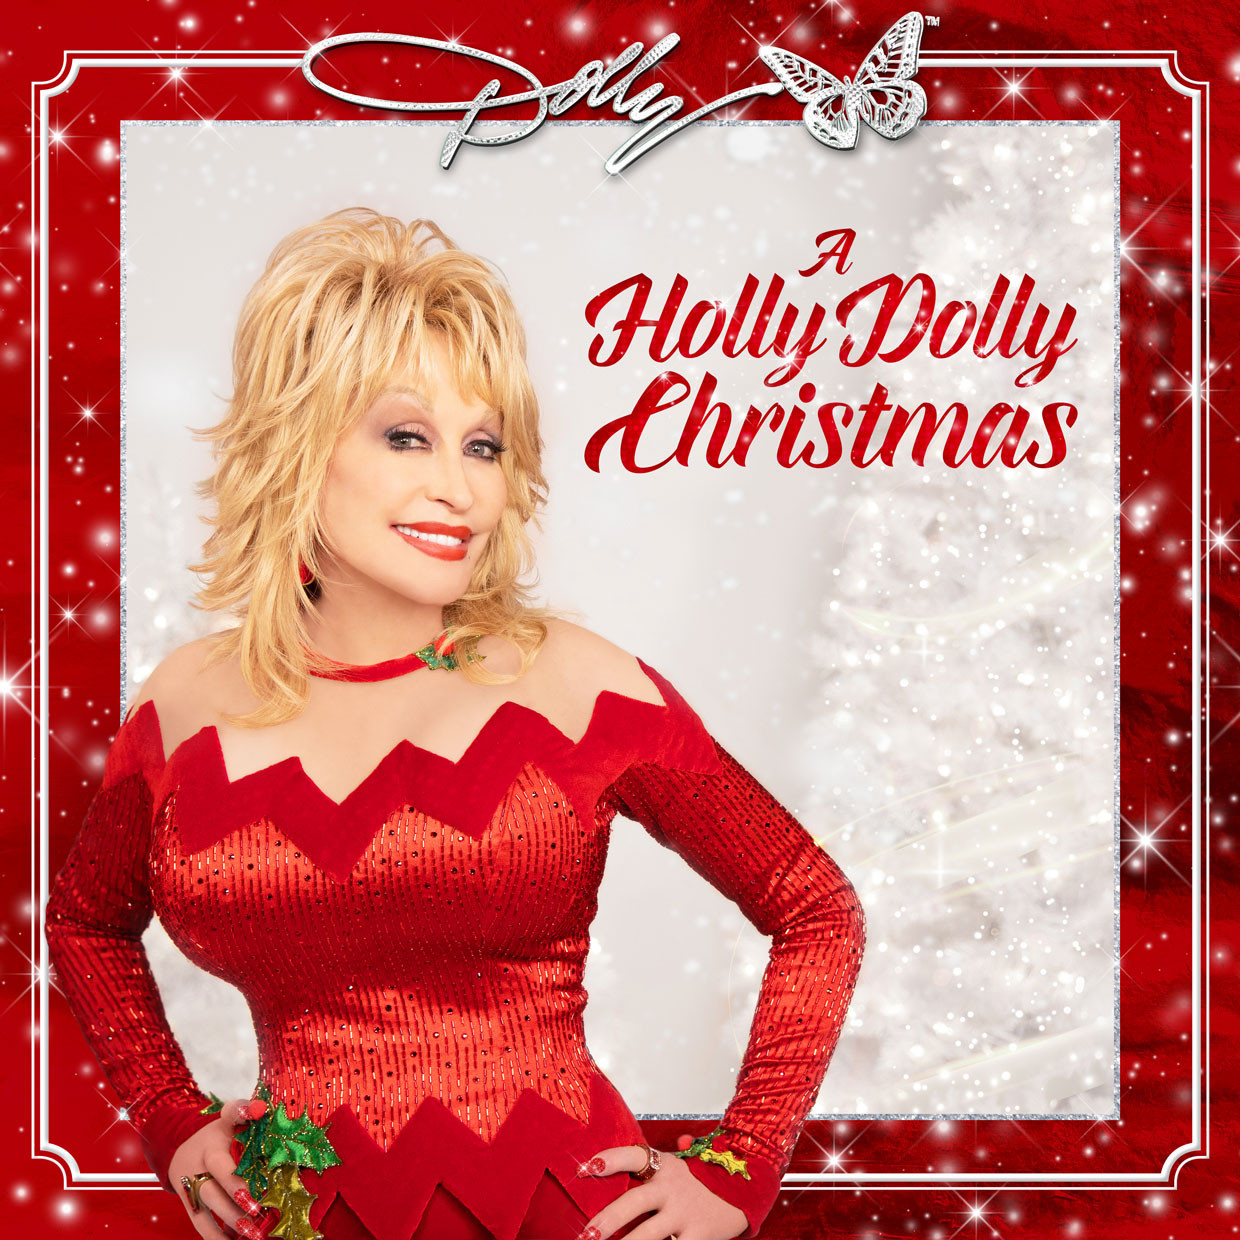 Top 50 Christmas Cd Mp3 2020 Dolly Parton   Dollymania: The Online Dolly Parton Newsmagazine